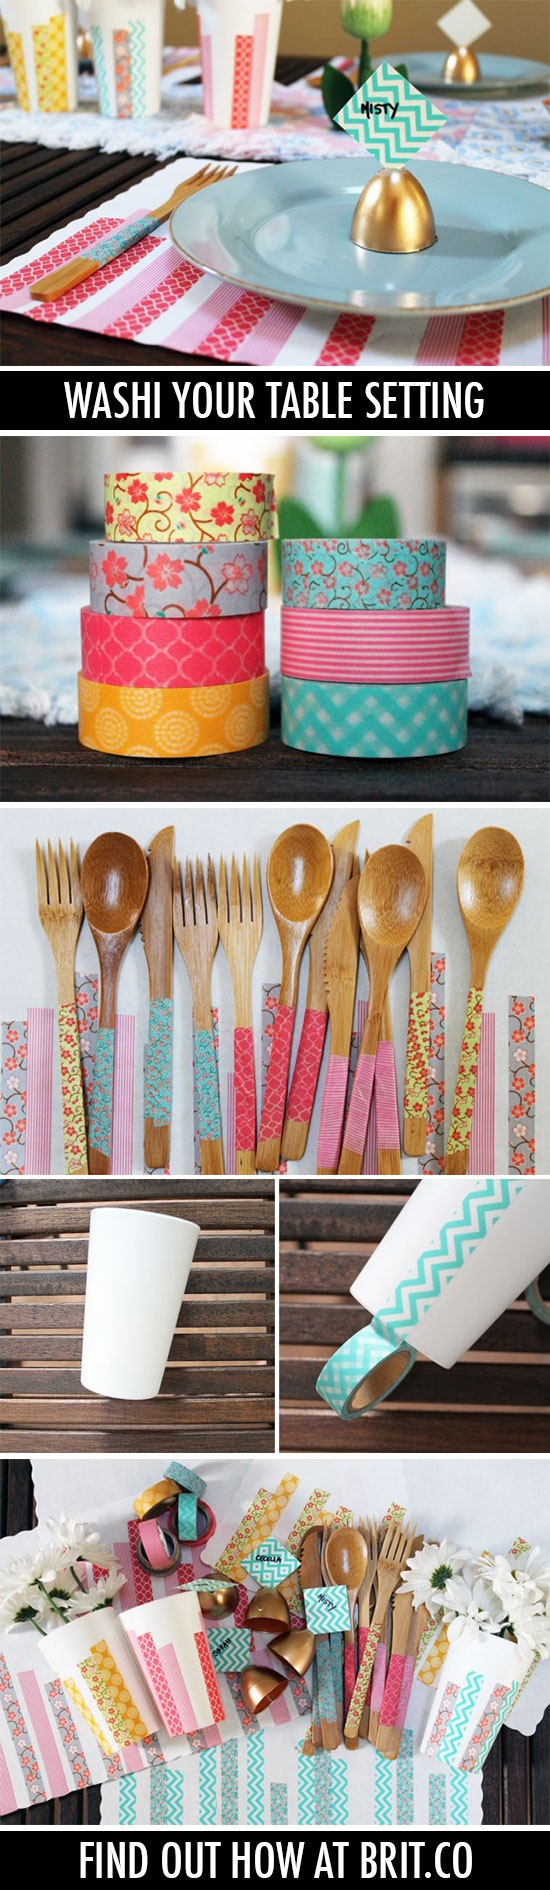 Wrapping tips for gorgeous gifts every time brit co - Washi Your Table 4 Quick Projects For Sunday Brunch